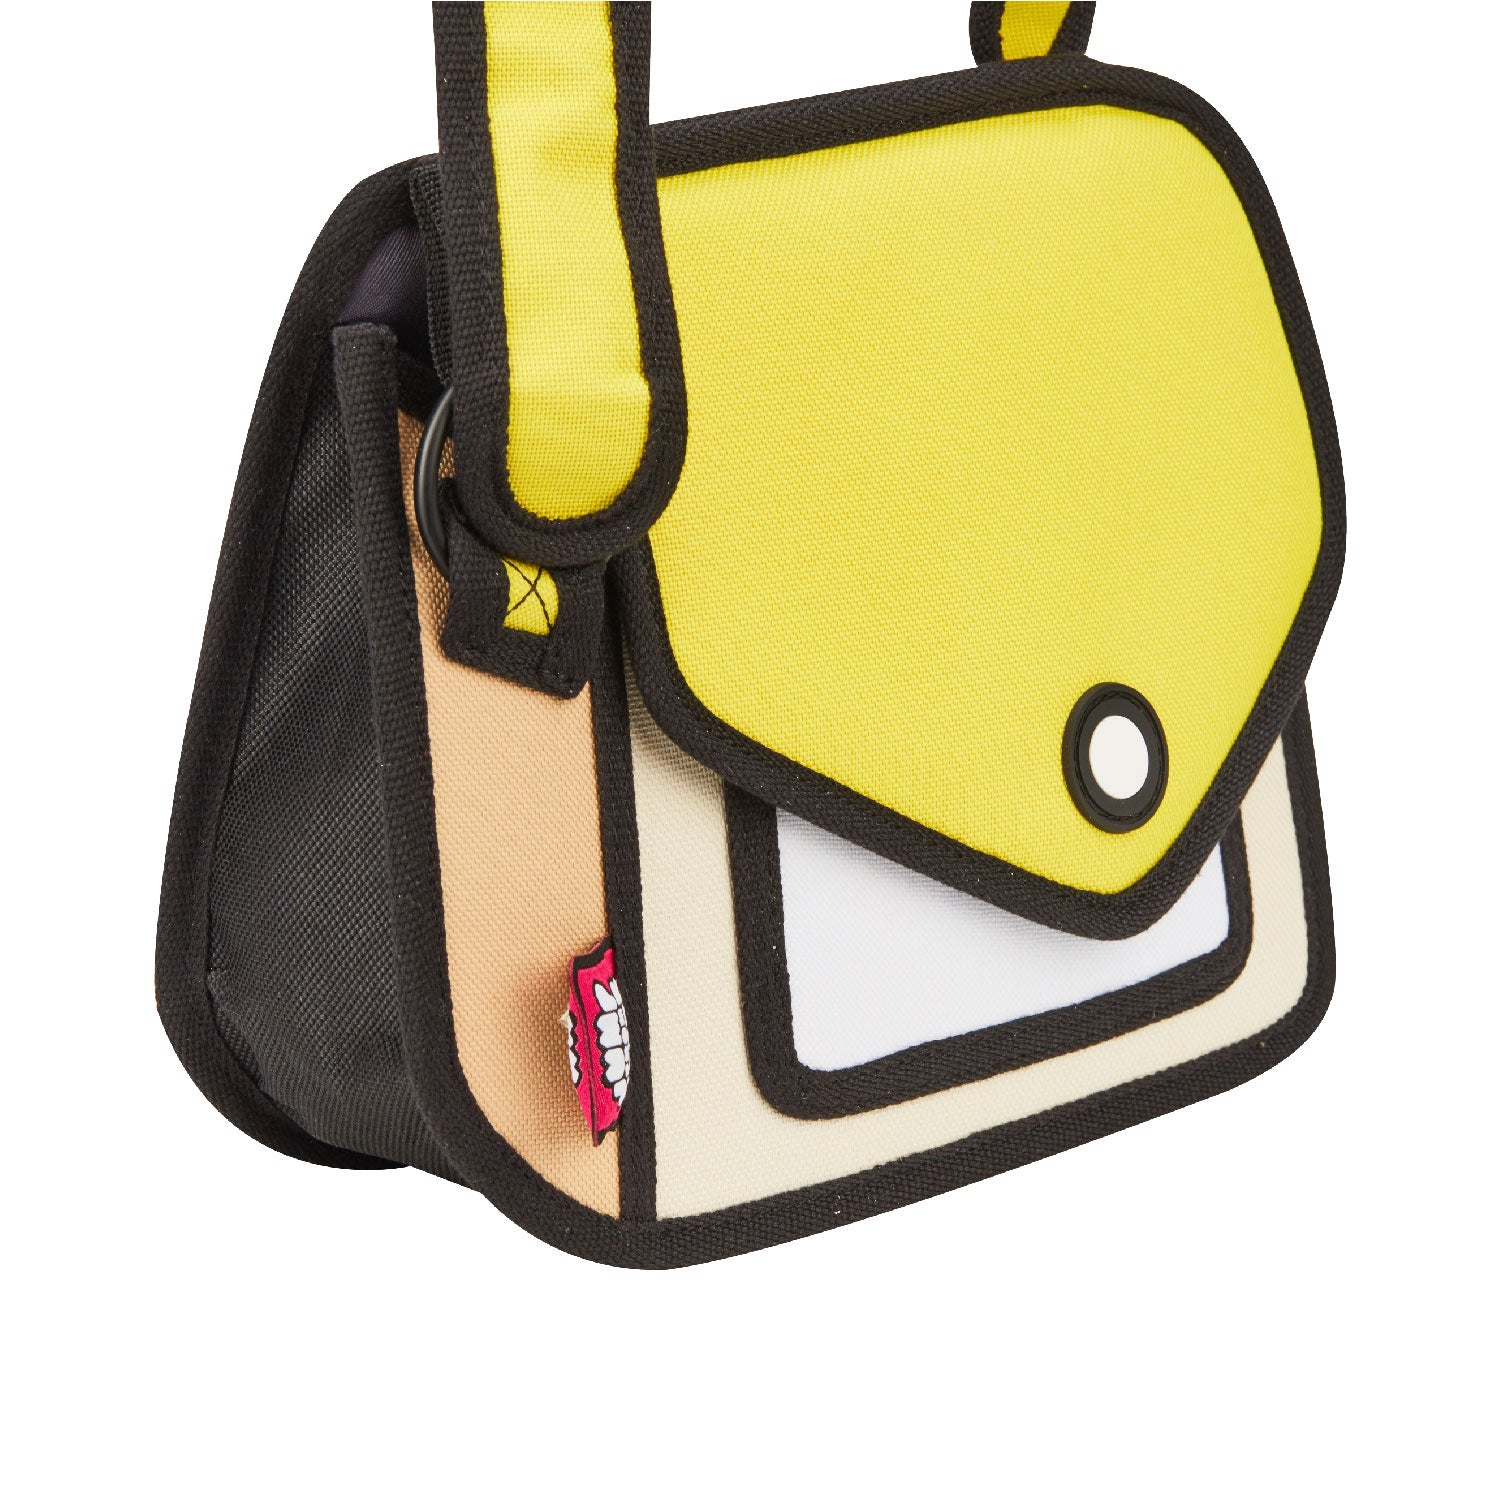 8229b26c4a01 ... Junior Giggle Minion Yellow Shoulder Bag - JumpFromPaper ...